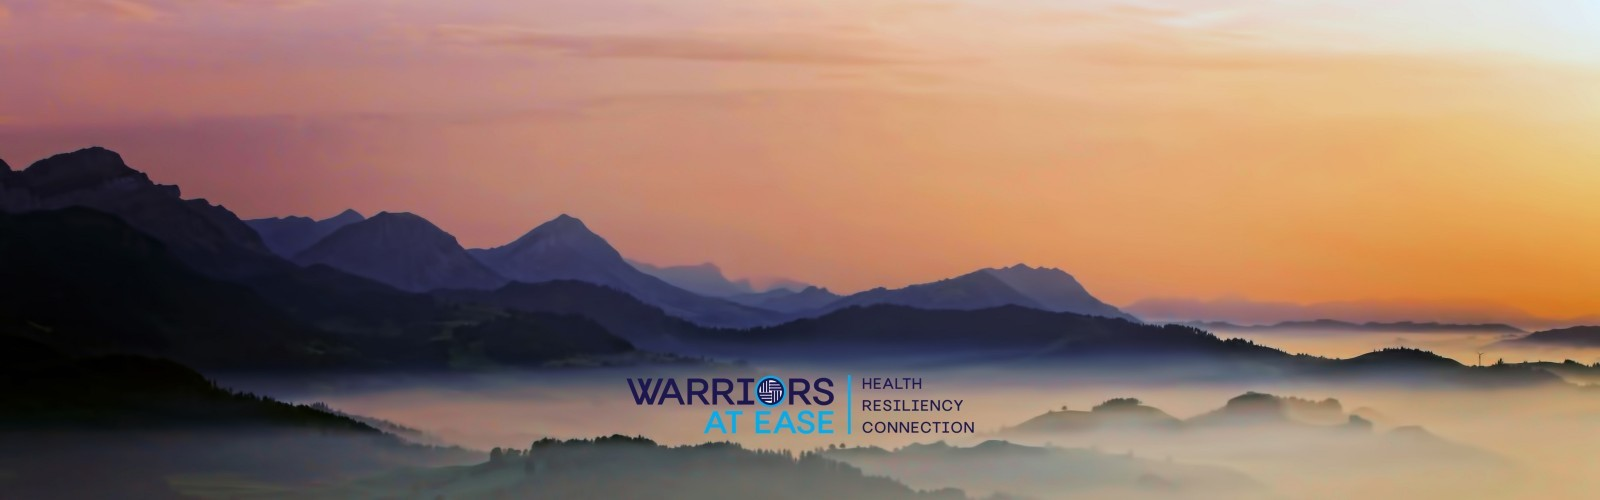 iRest for Warriorst at Ease Web Banner_1